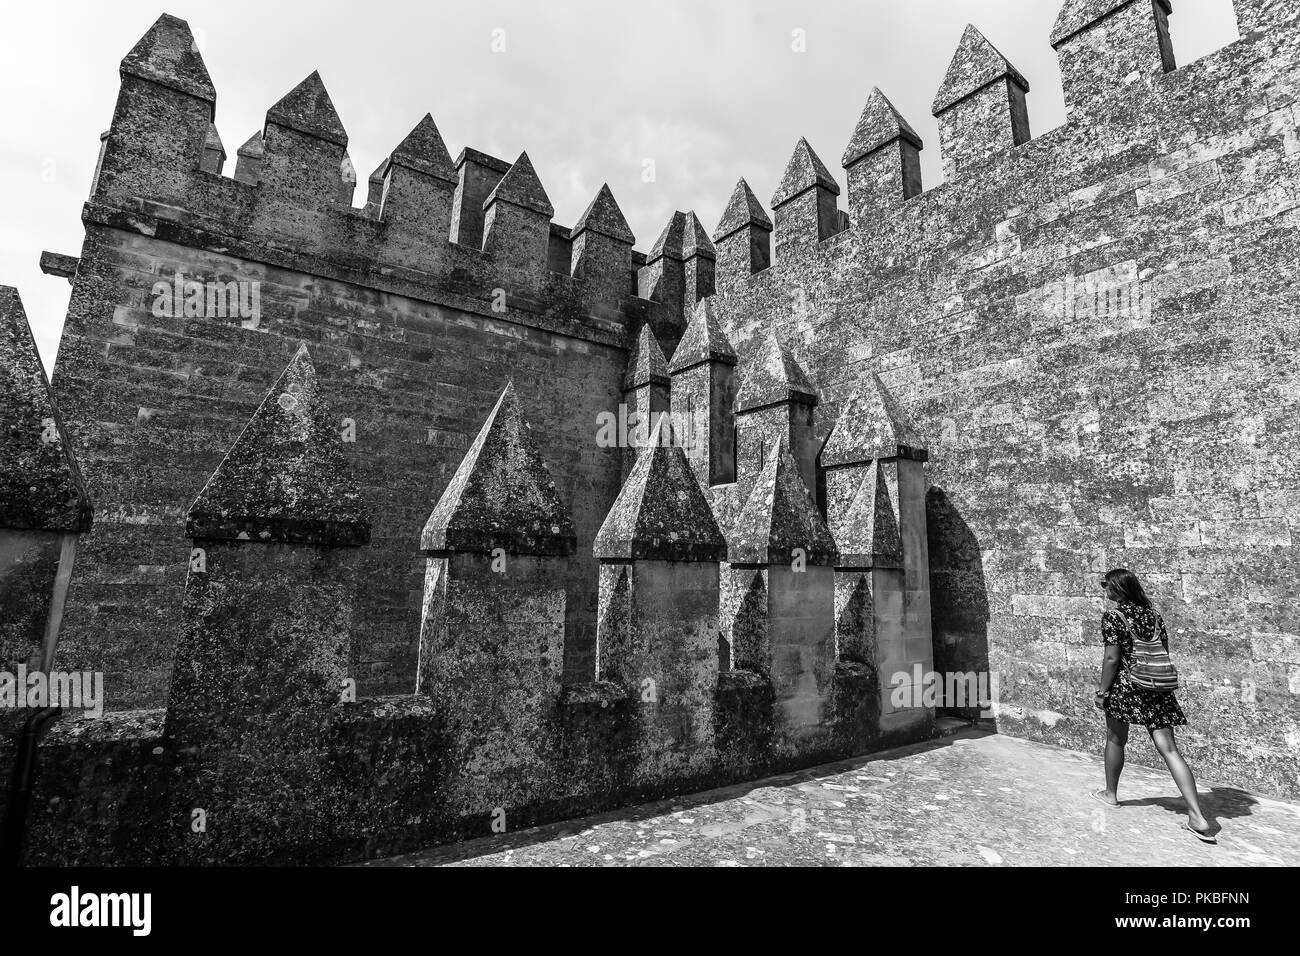 Game Of Thrones Castle Black And White Stock Photos Images Alamy